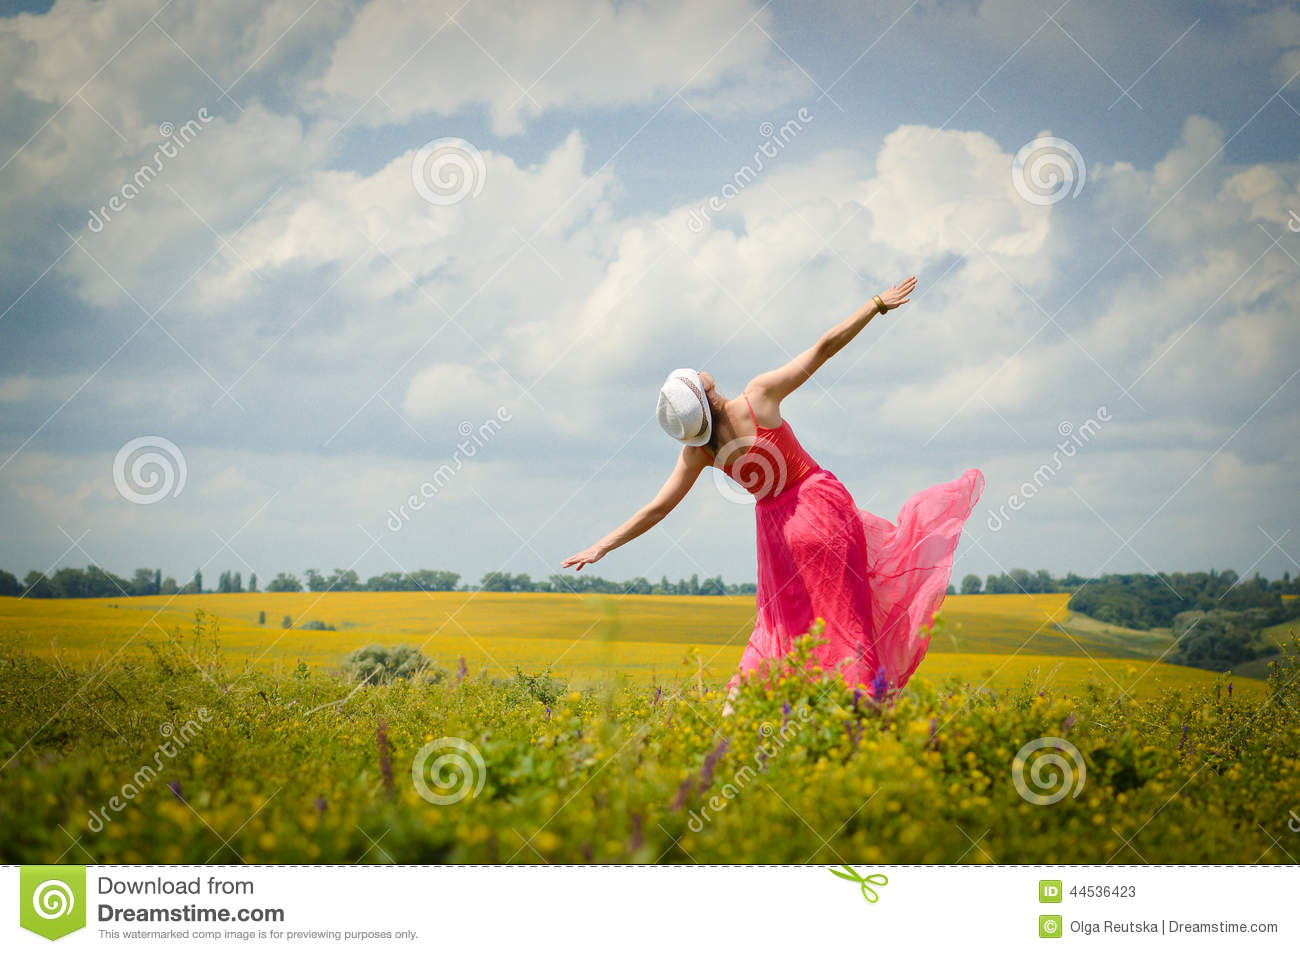 Sunny freedom: image of beautiful blond young woman in pink dress having fun dancing on green summer outdoors blue sky copy space